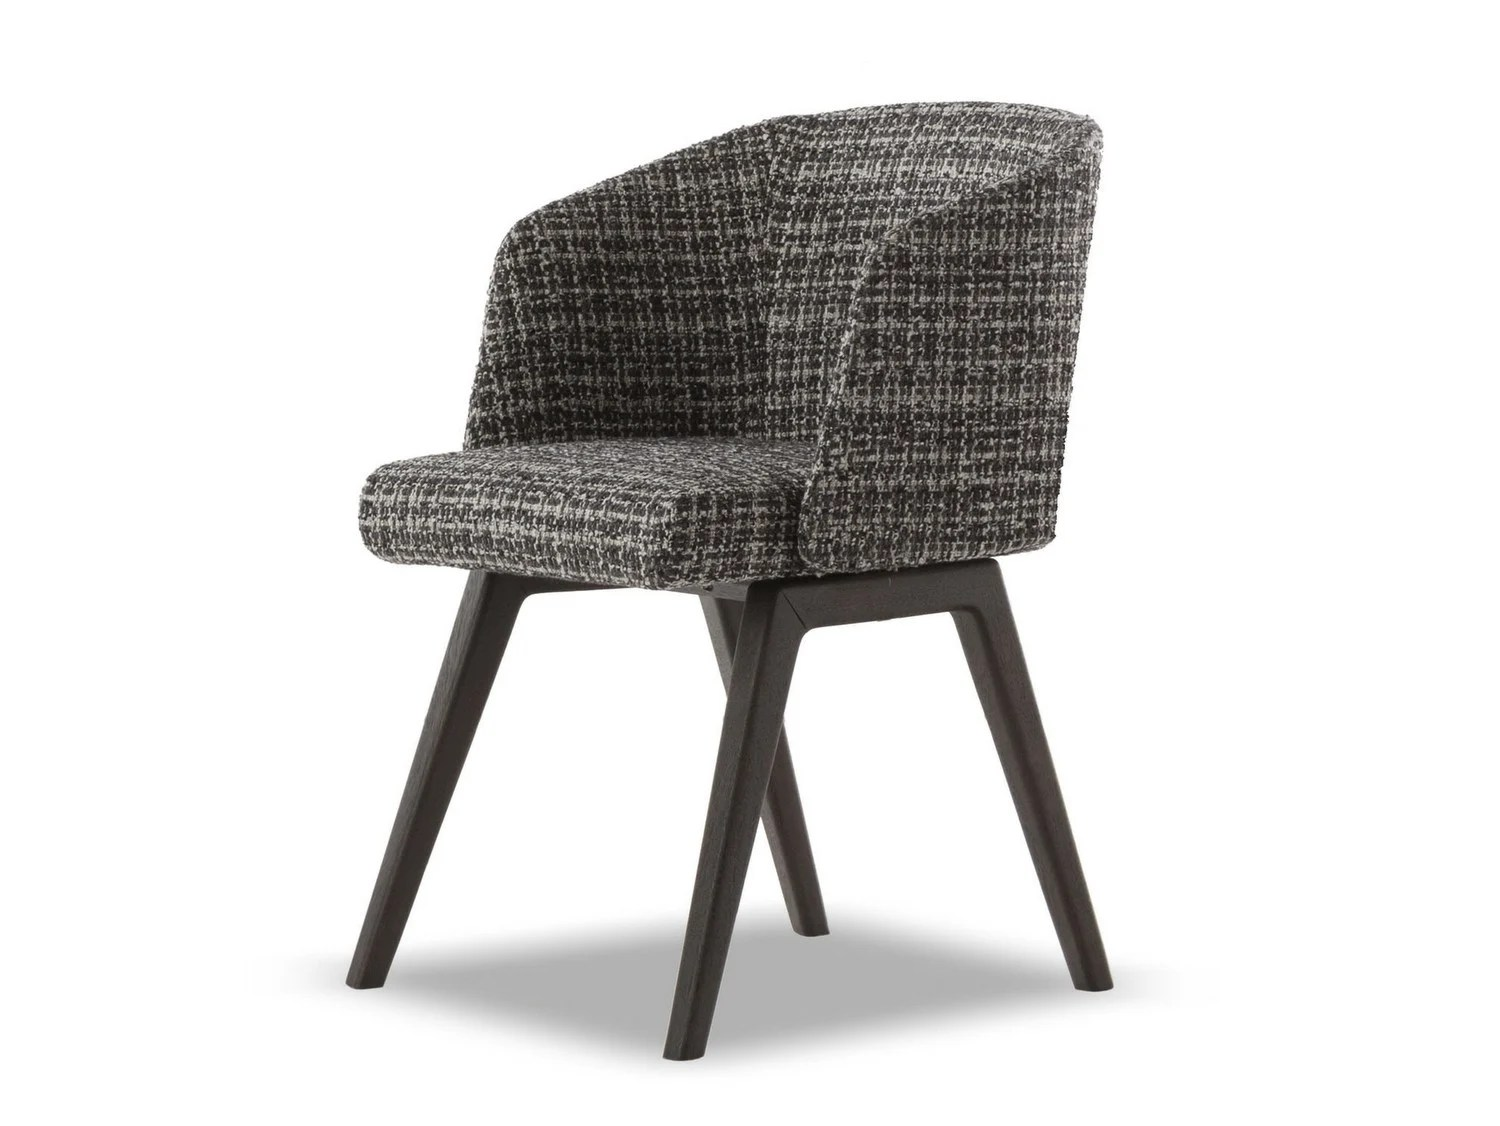 Sedia Salone Del Mobile Milano Chair Creed Little Armchair By Minotti